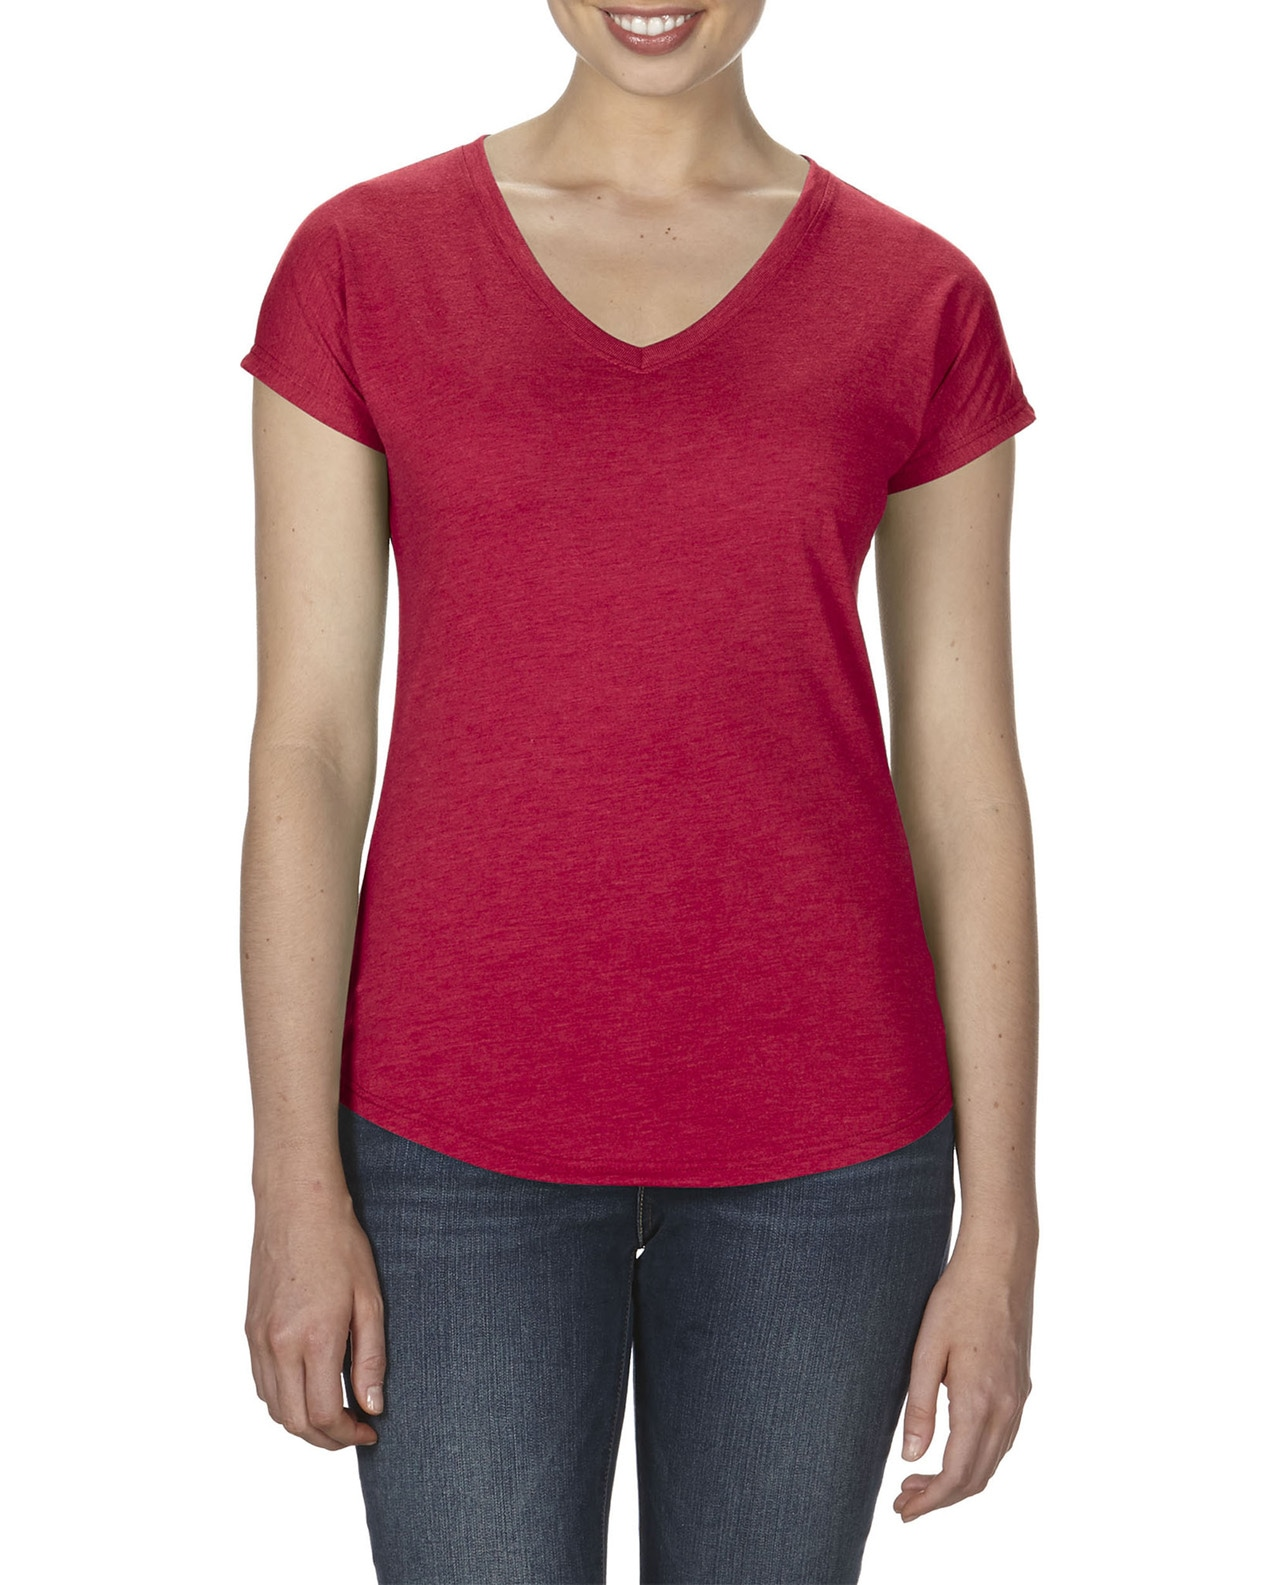 Anvil 6750VL Tri-Blend Ladies V-Neck Tee